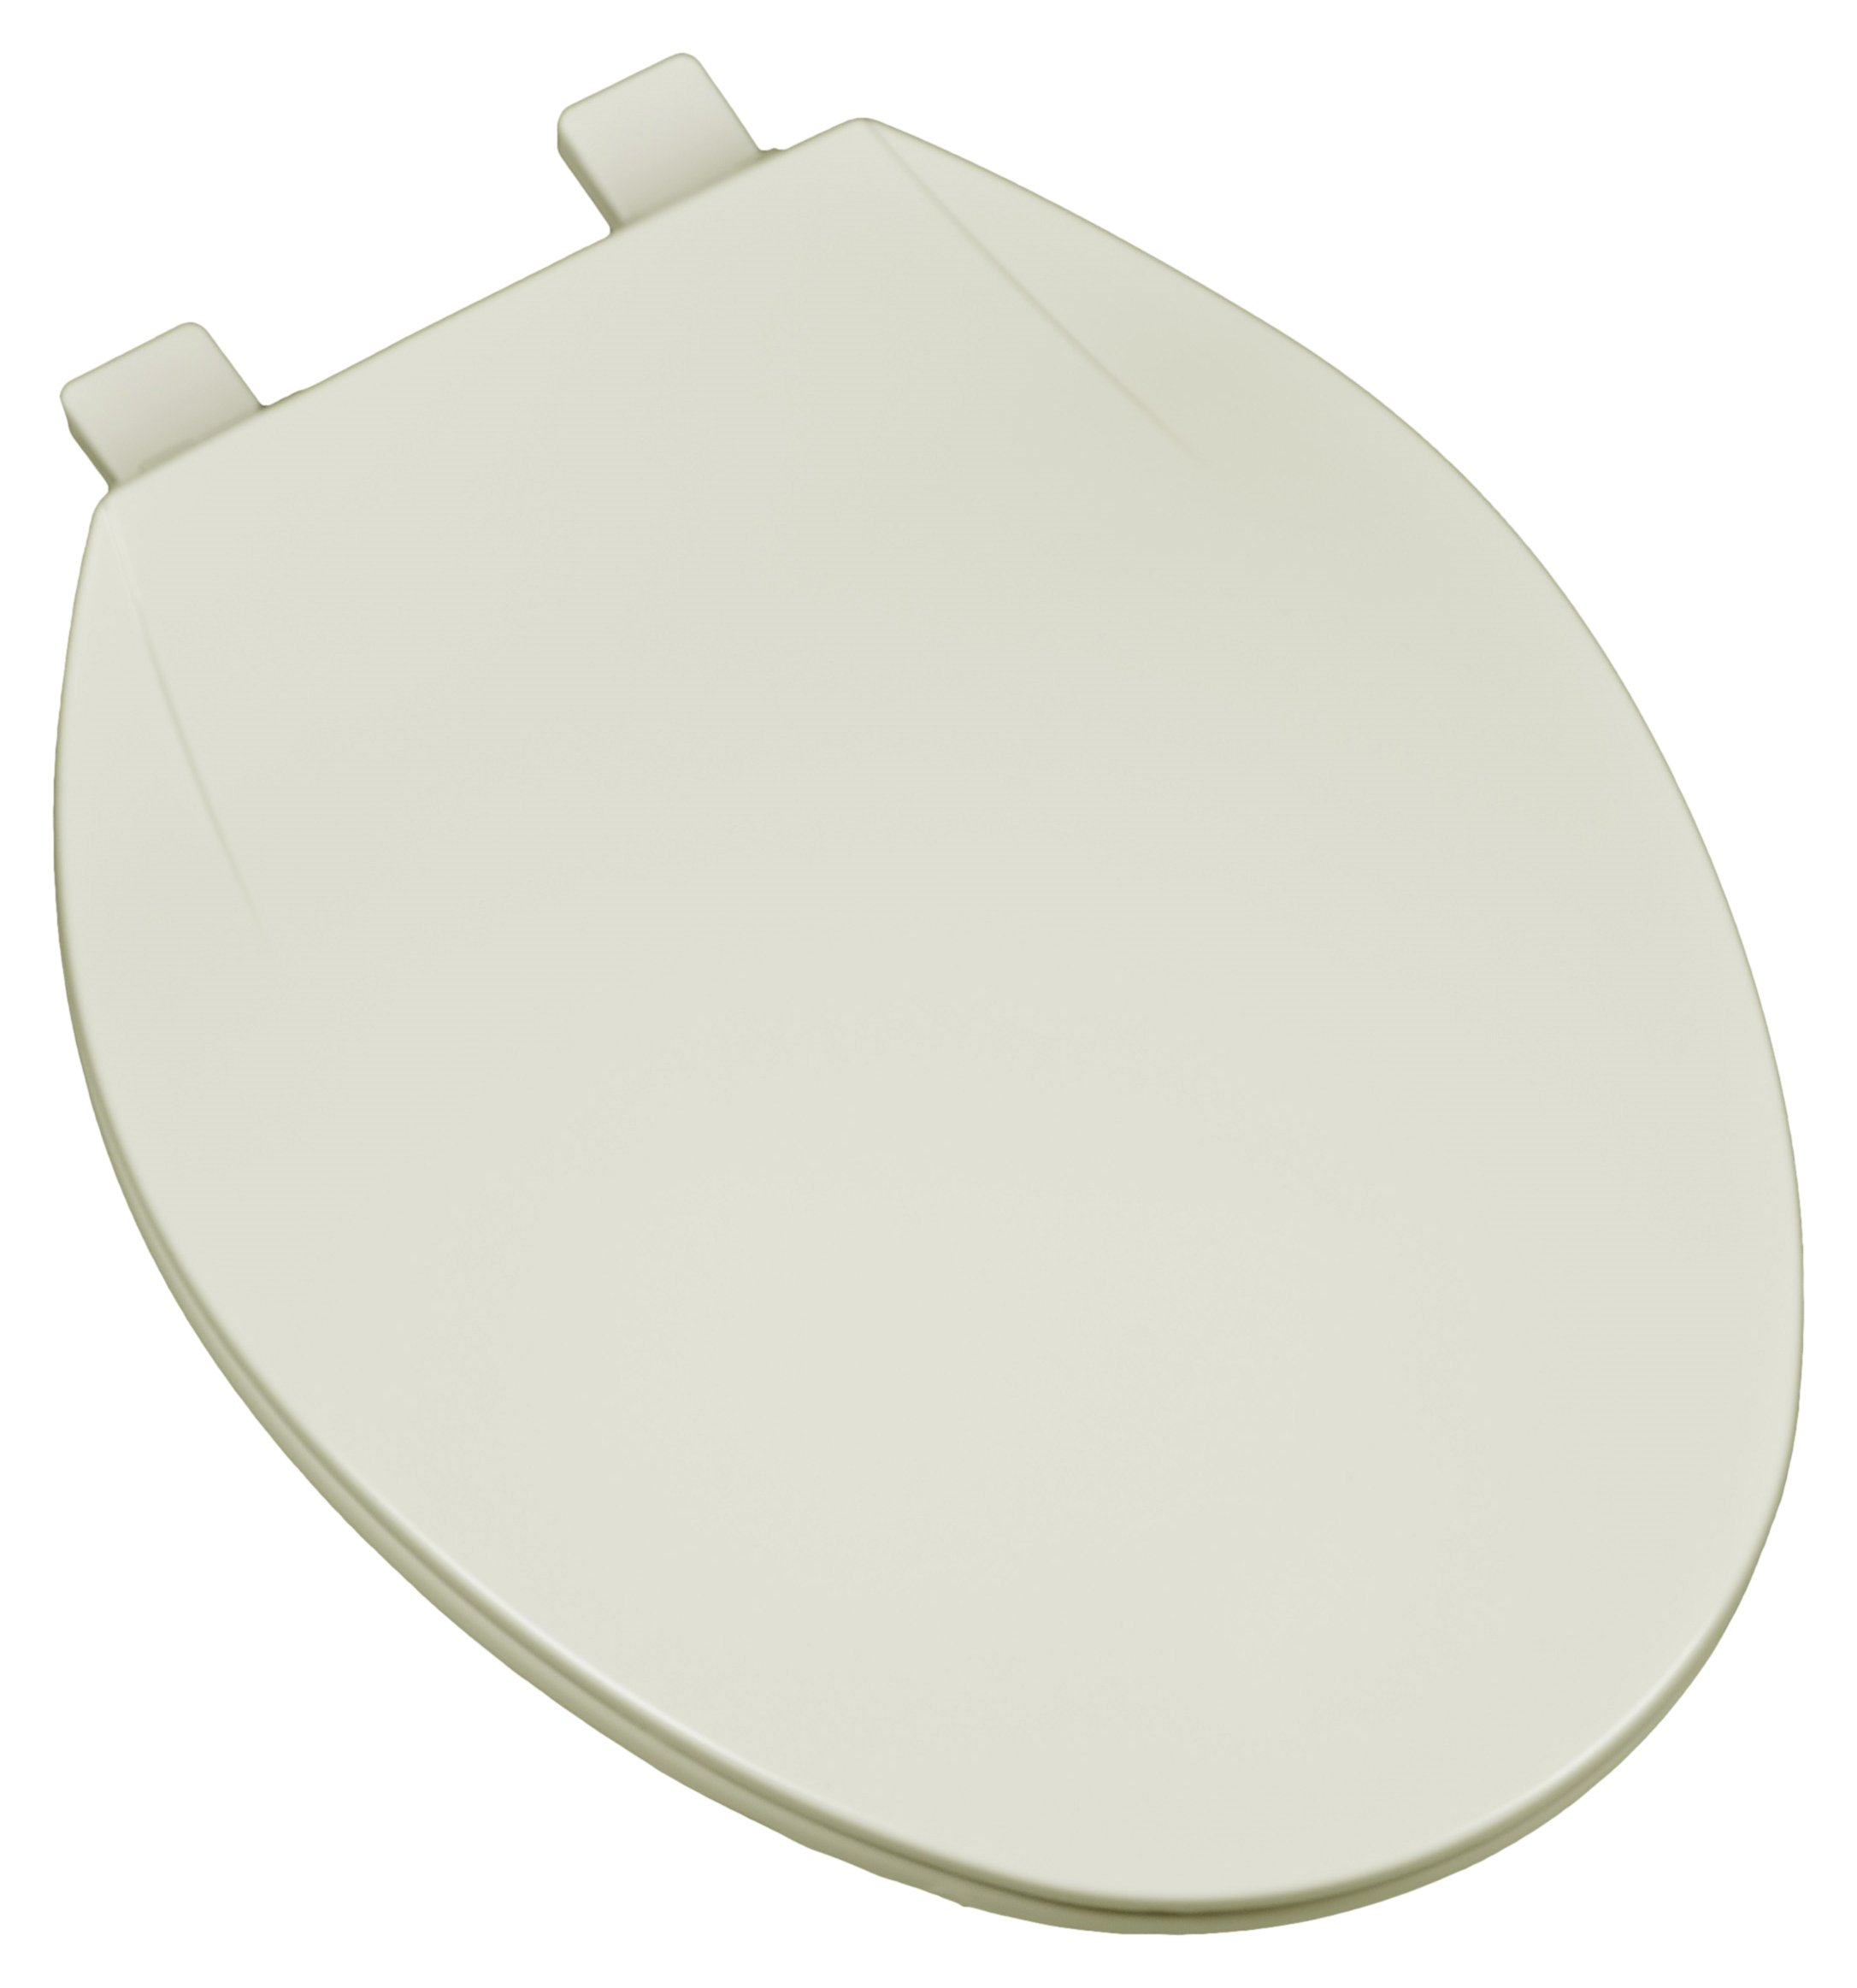 Bath Décor 2F1E4-02 Deluxe Plastic Elongated Toilet Seat with Adjustable Hinge